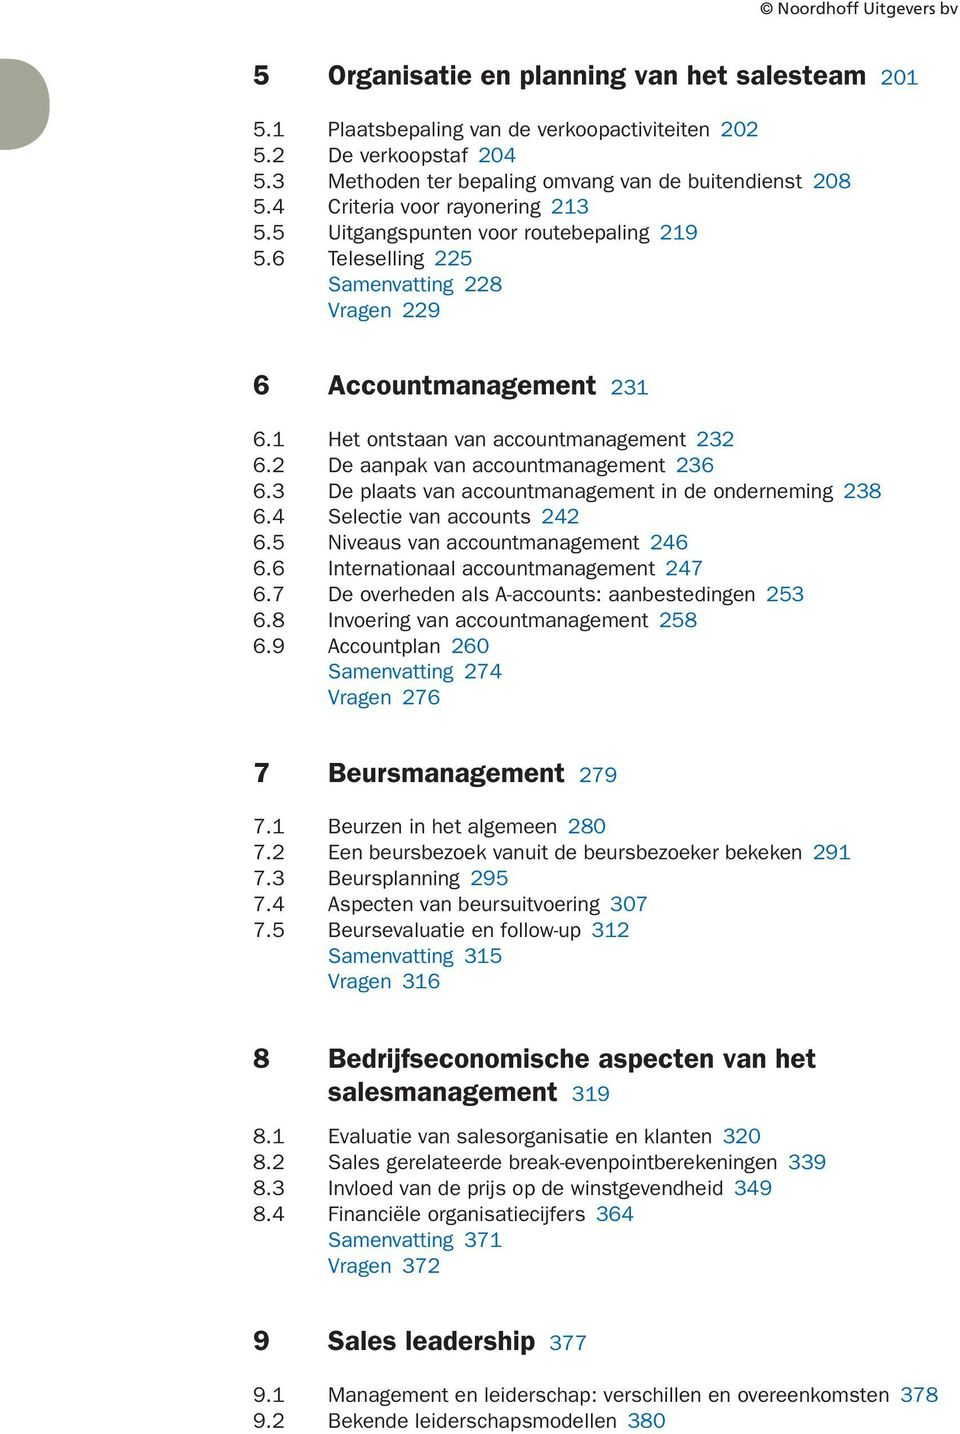 De plaats van accountmanagement in de onderneming. Selectie van accounts. Niveaus van accountmanagement. Internationaal accountmanagement. De overheden als A-accounts: aanbestedingen.